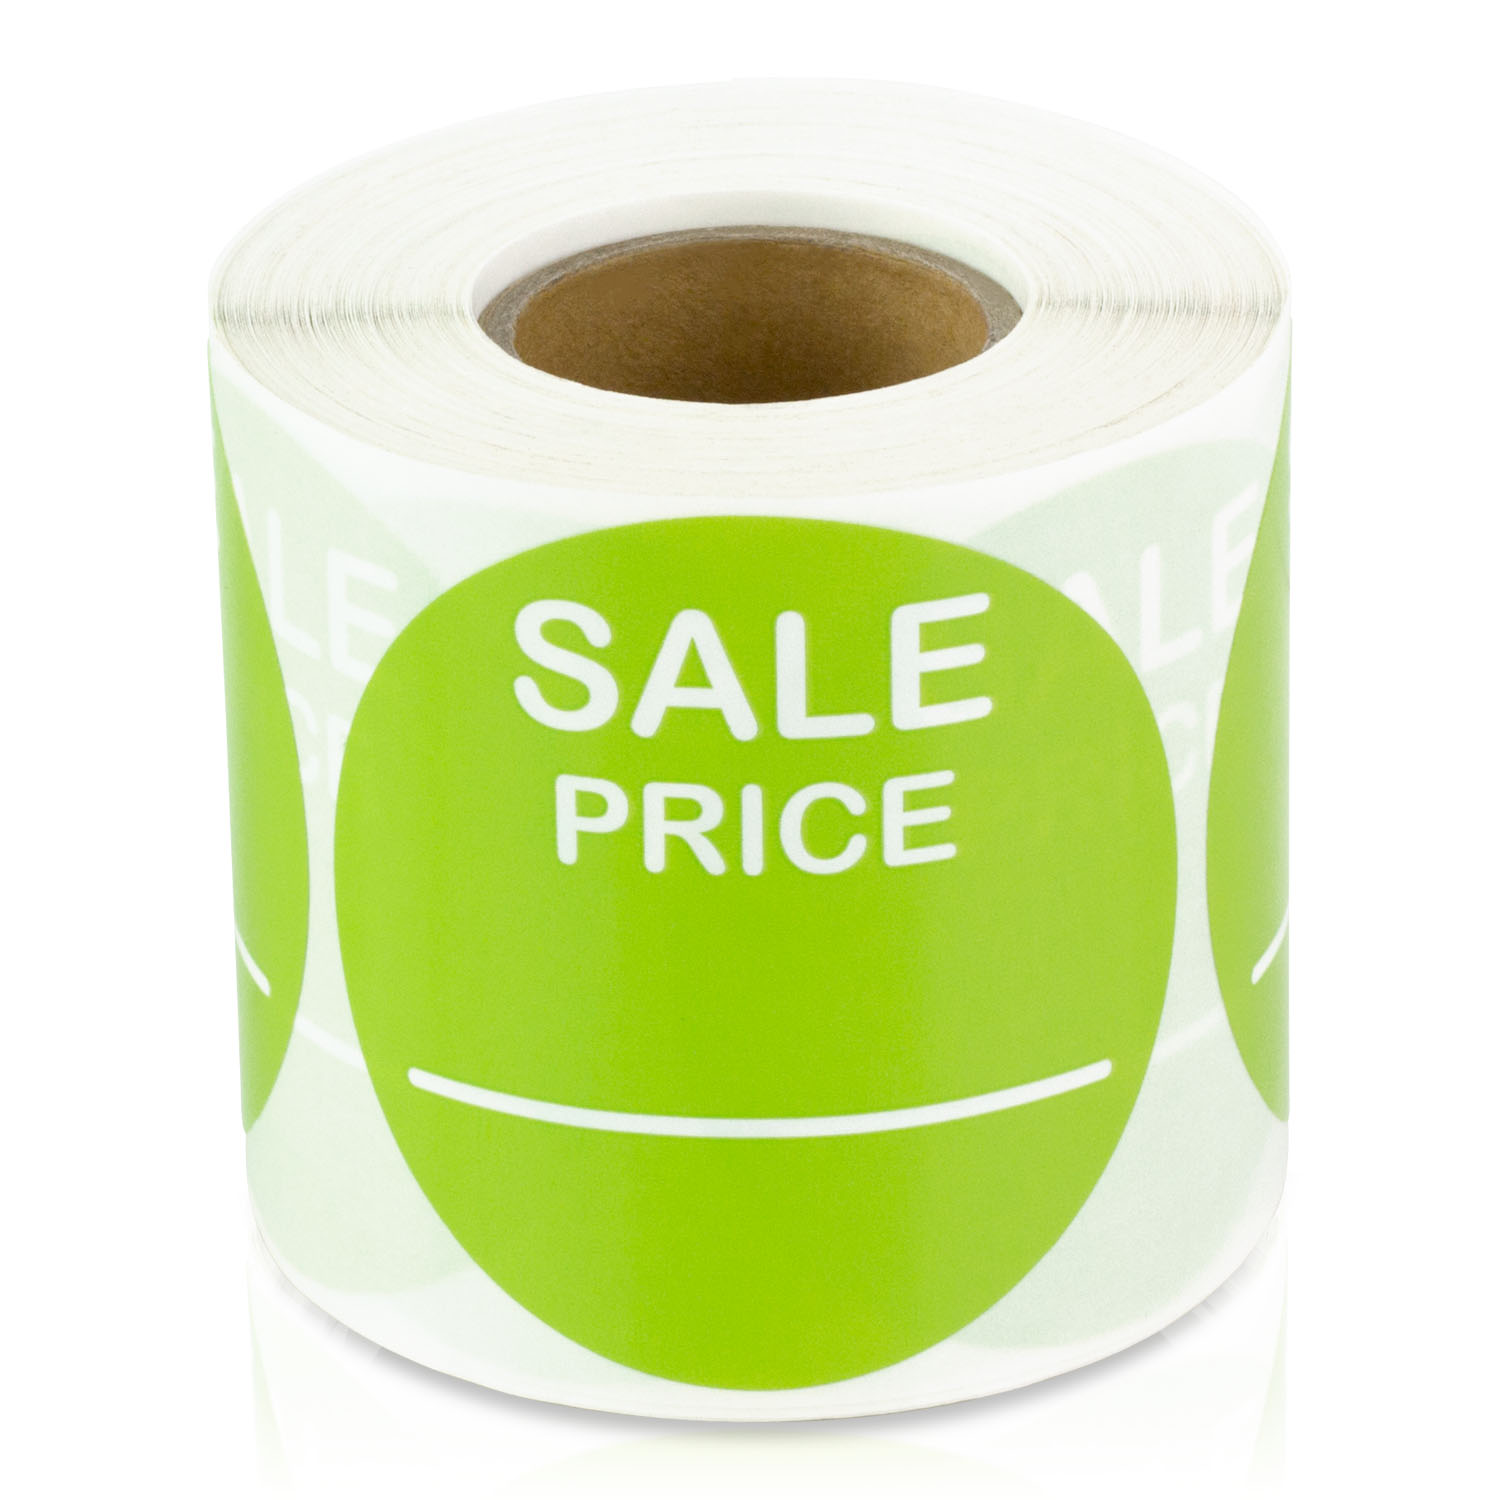 Sale price 2 round pricing retail store stickers tags labels stickers lime